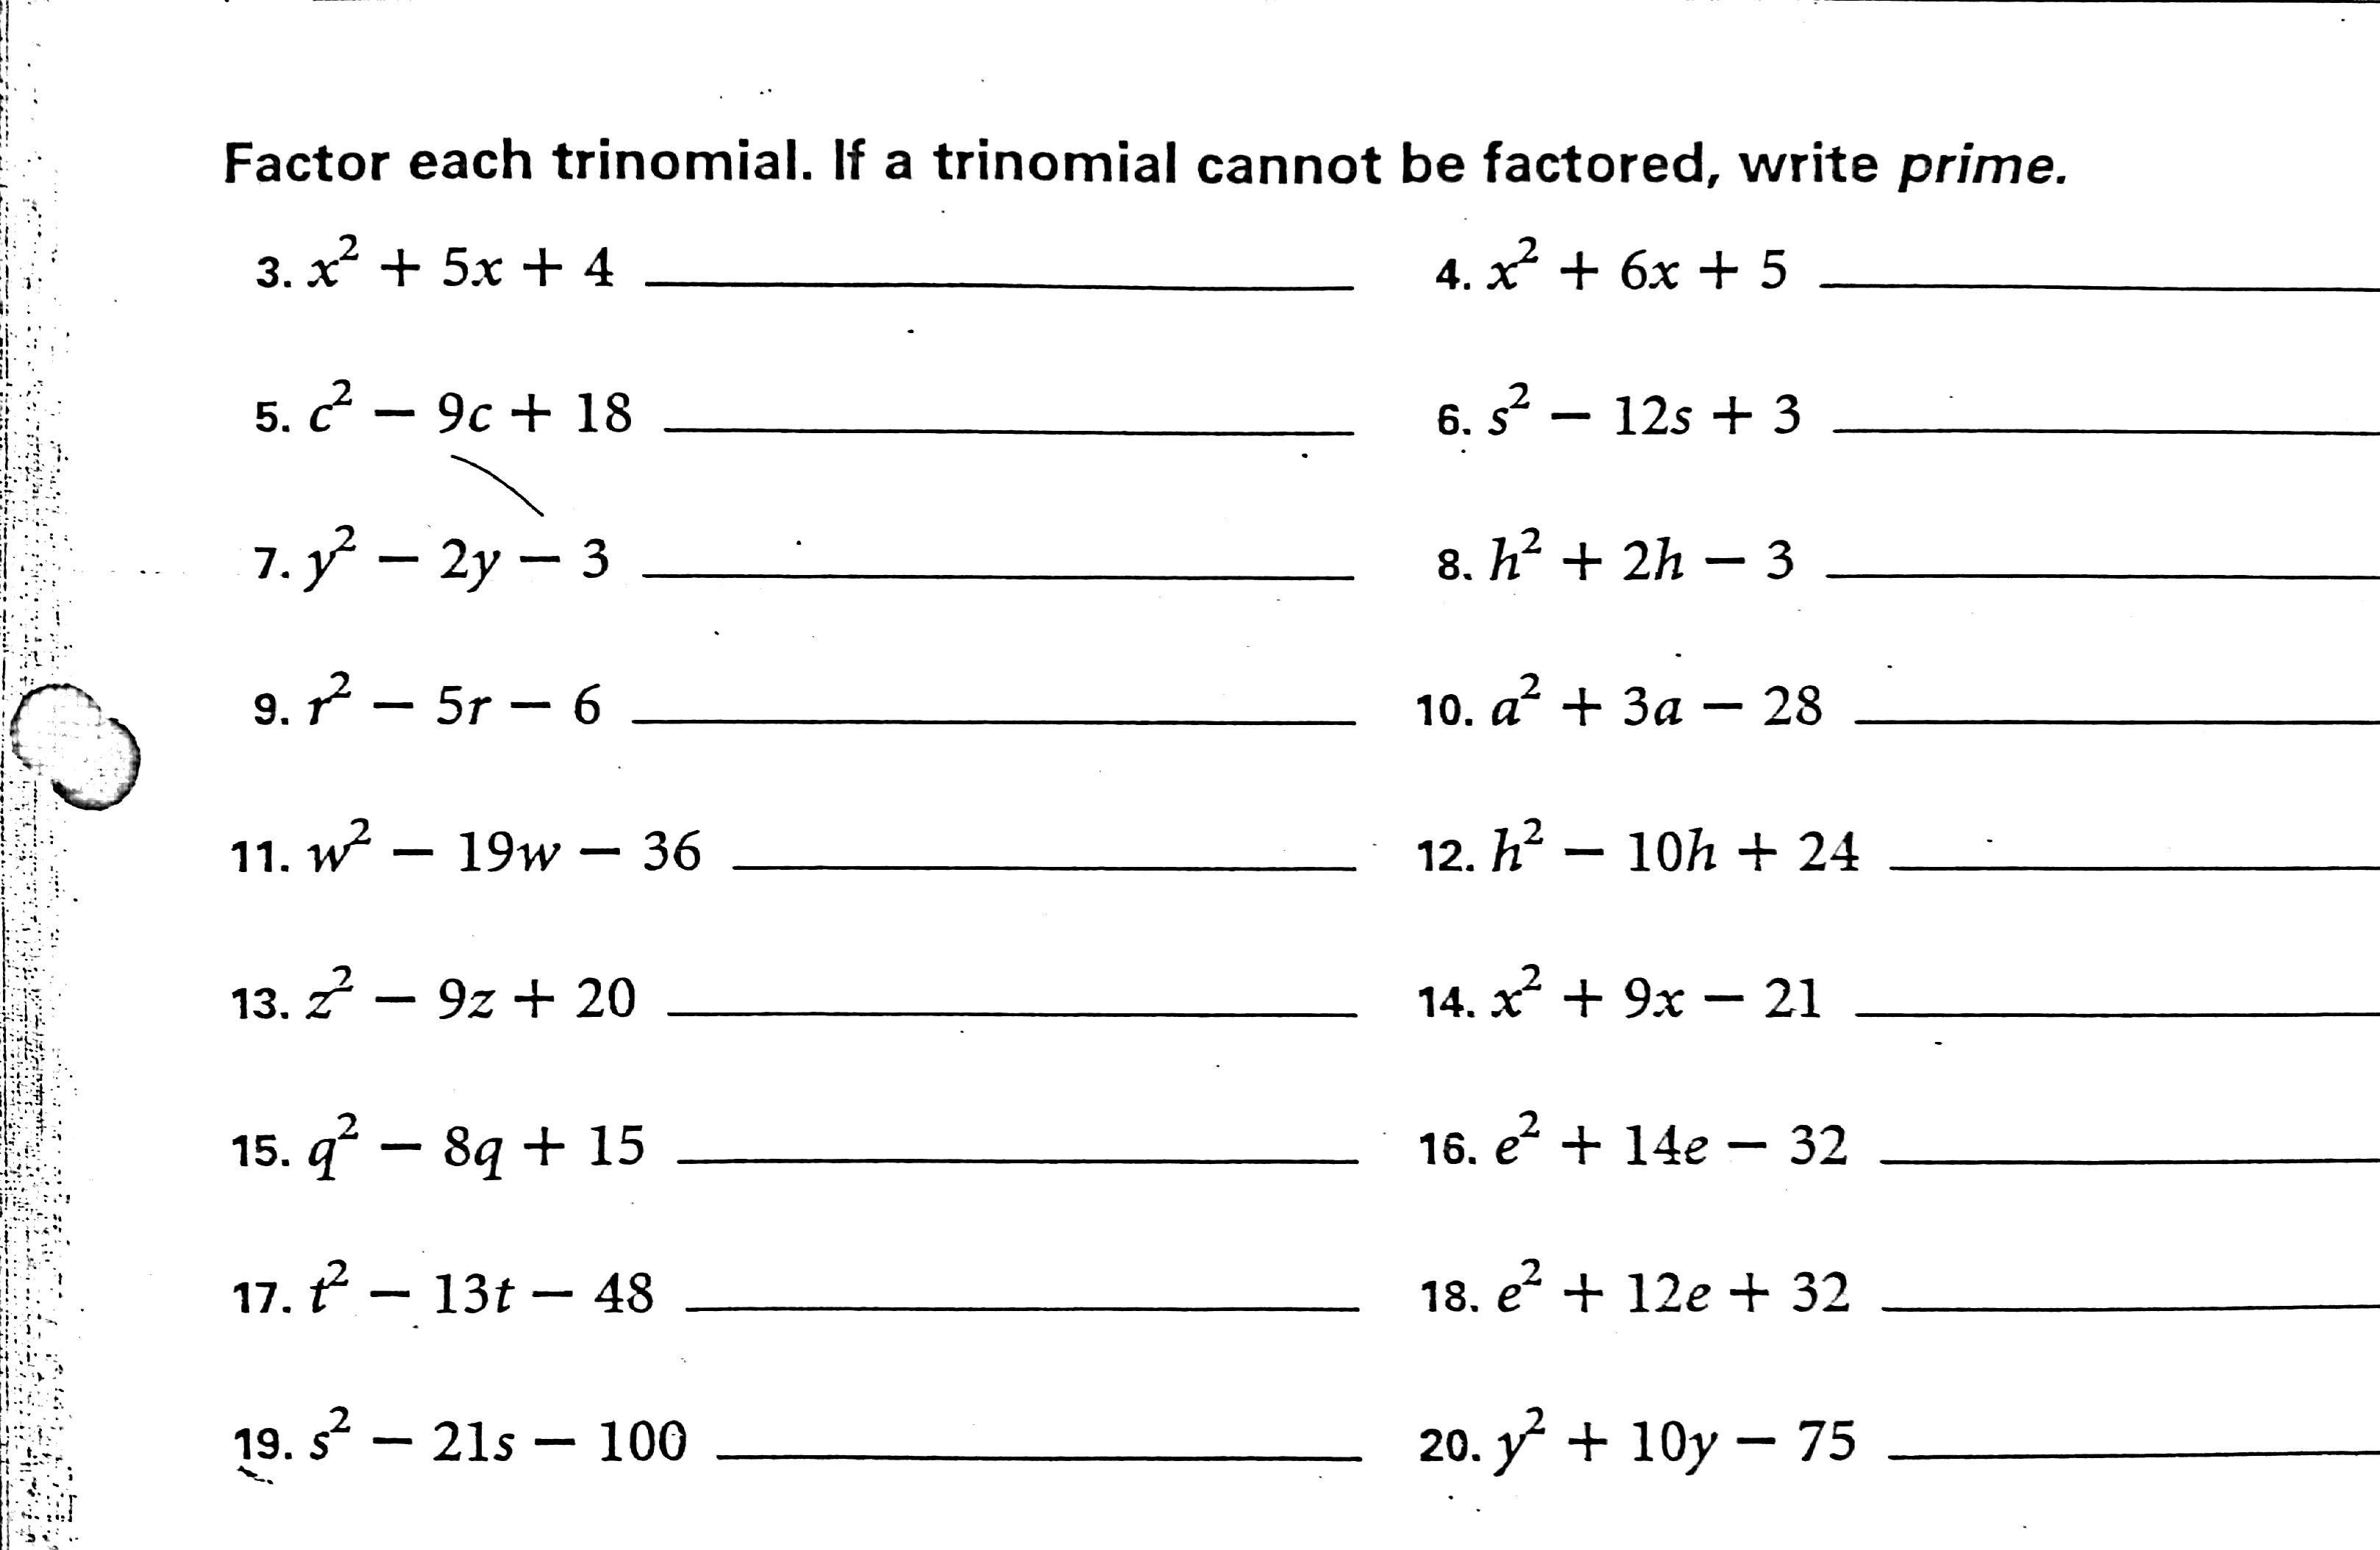 Proatmealus  Ravishing Factoring Worksheet  Delwfgcom With Excellent Factoring Polynomials Practice Worksheet With Answers Coterraneo With Amusing Grade  Subtraction Worksheet Also School Worksheets For Grade  In Addition Worksheet For Letter F And Plant Science Worksheets As Well As Maths Worksheet For Preschool Additionally Dot Abc Worksheets From Delwfgcom With Proatmealus  Excellent Factoring Worksheet  Delwfgcom With Amusing Factoring Polynomials Practice Worksheet With Answers Coterraneo And Ravishing Grade  Subtraction Worksheet Also School Worksheets For Grade  In Addition Worksheet For Letter F From Delwfgcom